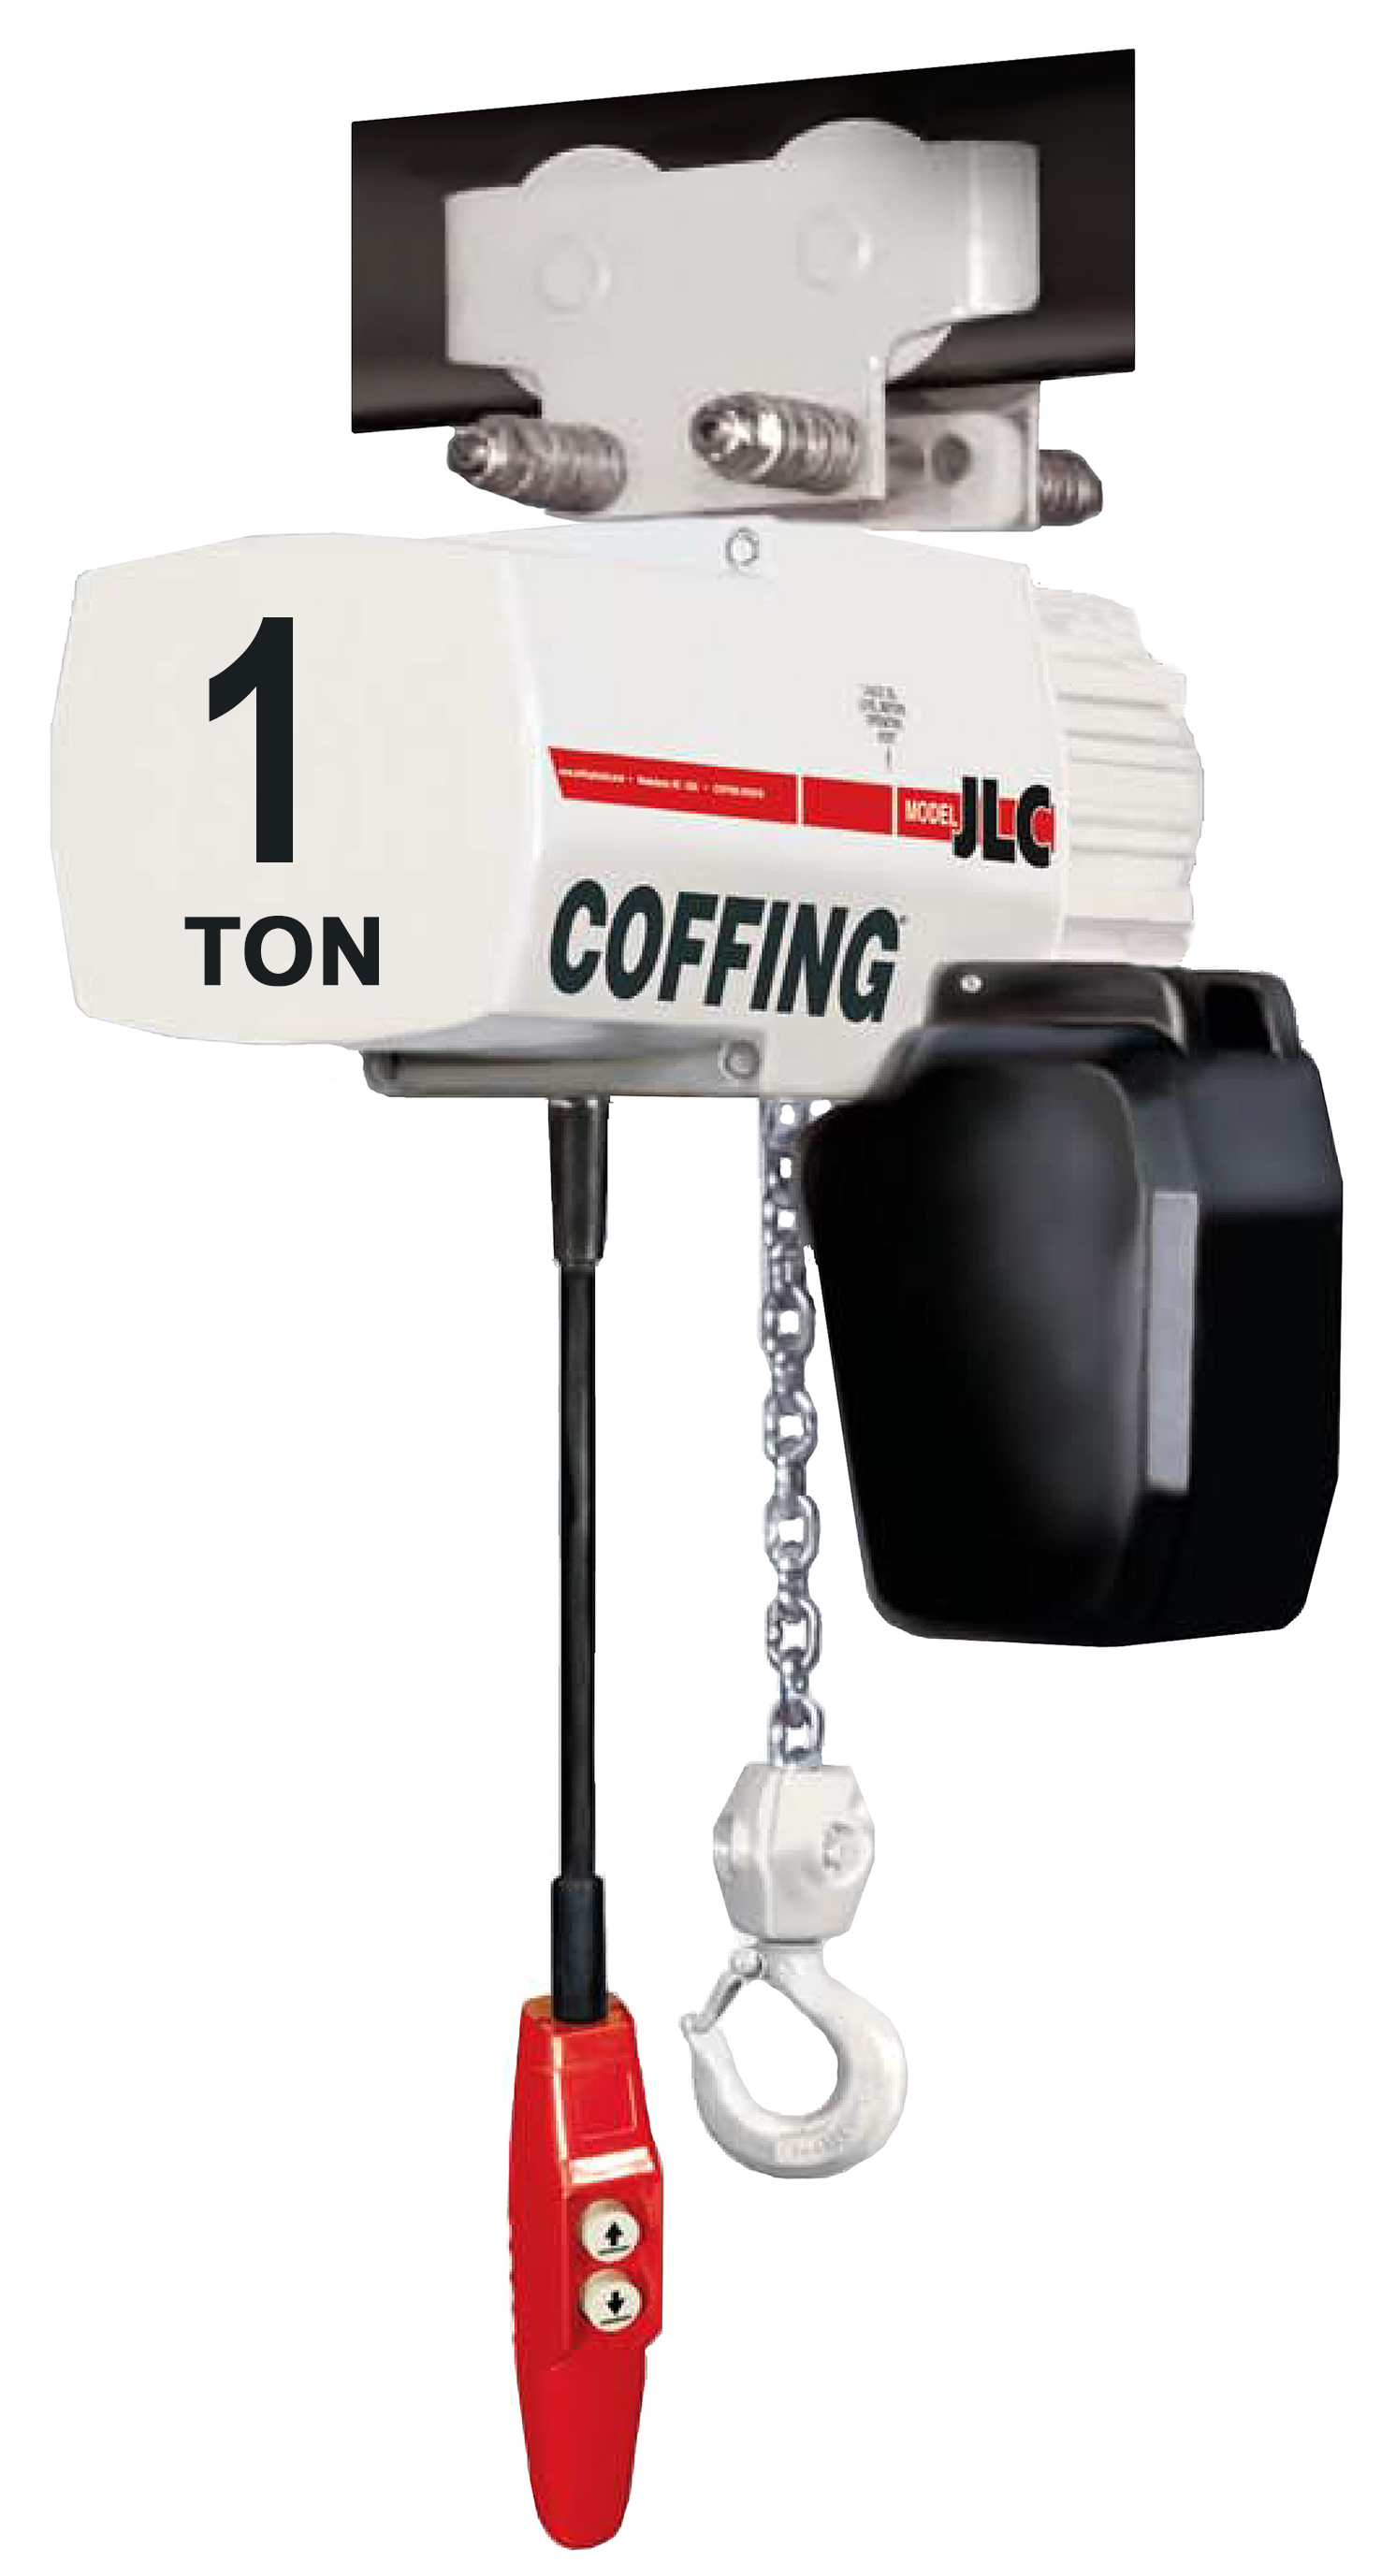 1-Ton Coffing JLC Electric Chain Hoist with Trolley